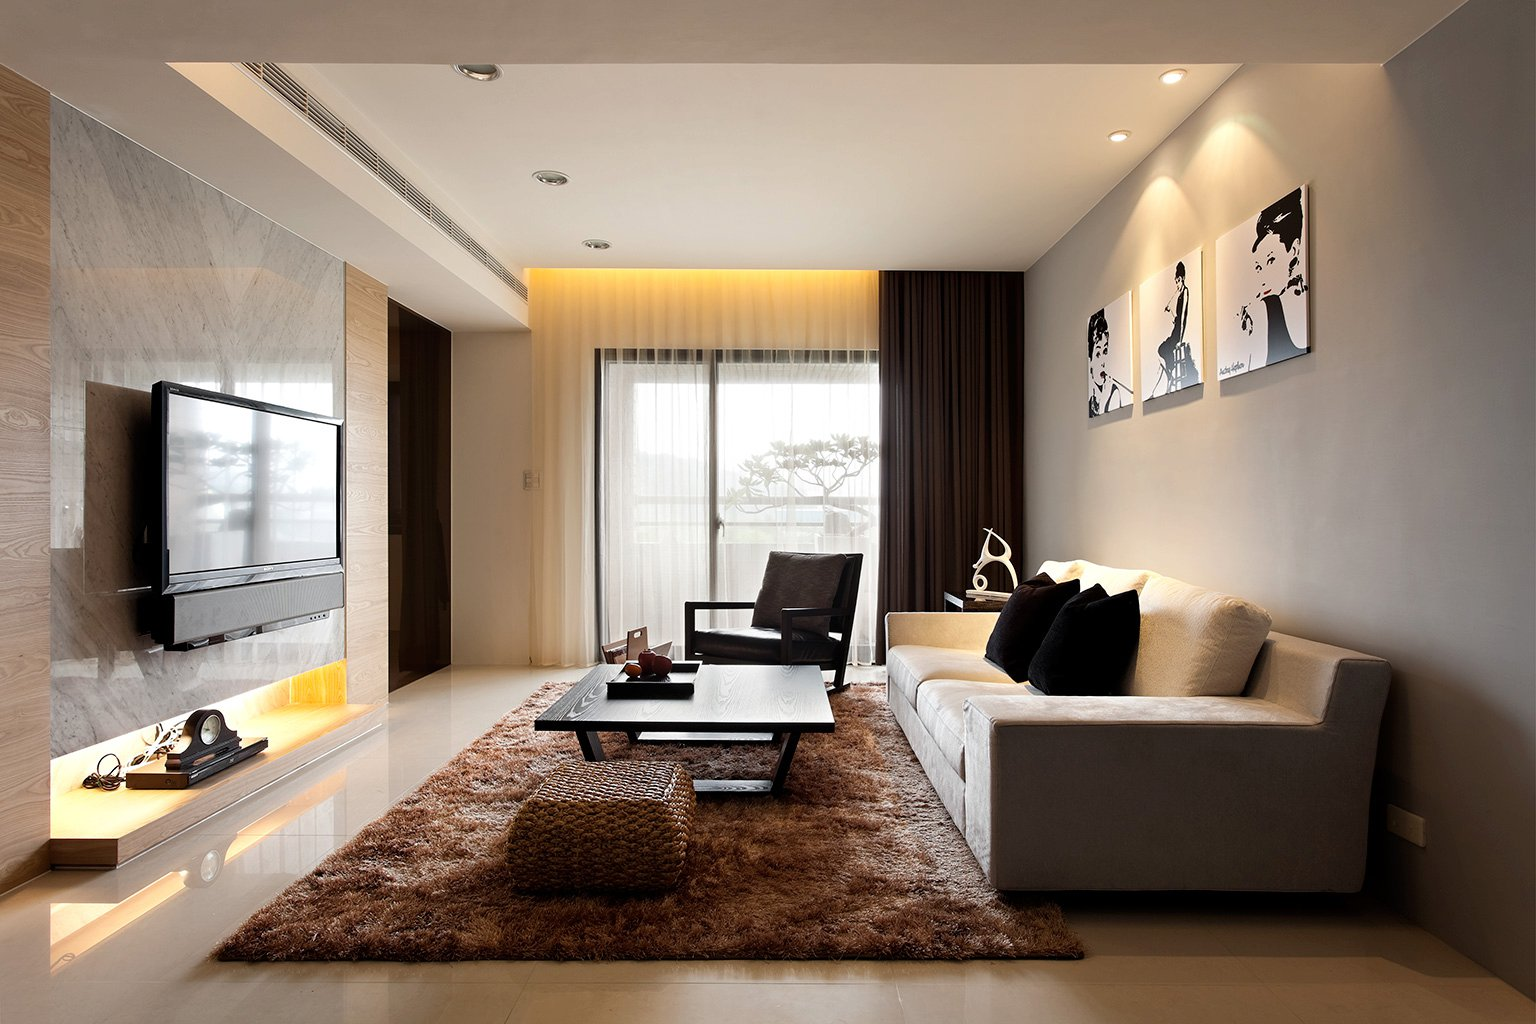 Brilliant Modern Living Room Decorations 1536 x 1024 · 238 kB · jpeg